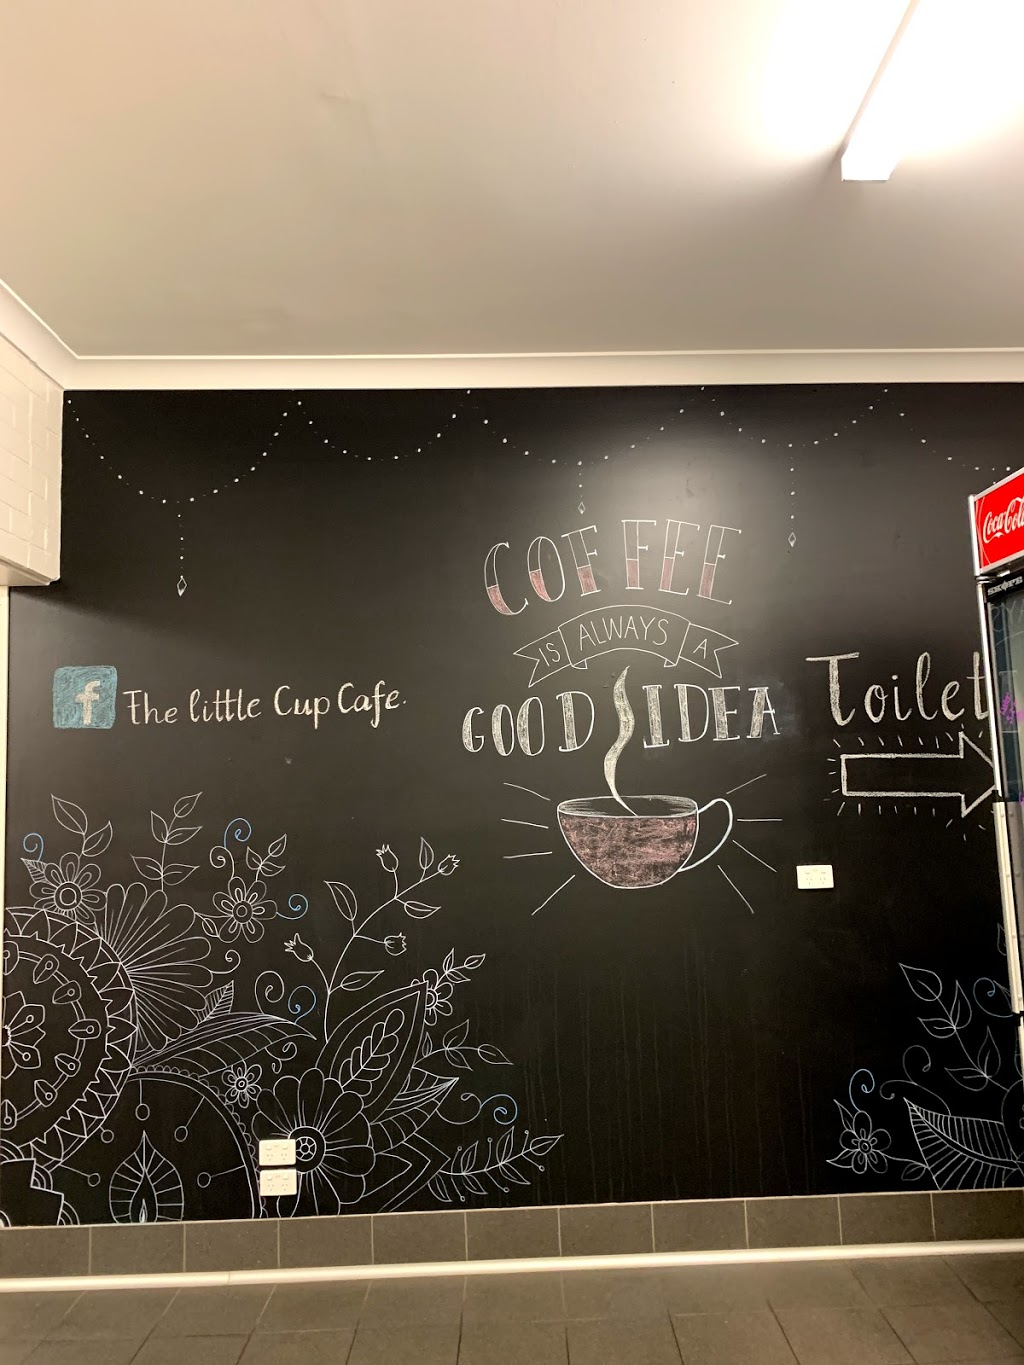 The Little Cup Cafe | cafe | 403c Lake Albert Rd, Kooringal NSW 2650, Australia | 0269224522 OR +61 2 6922 4522